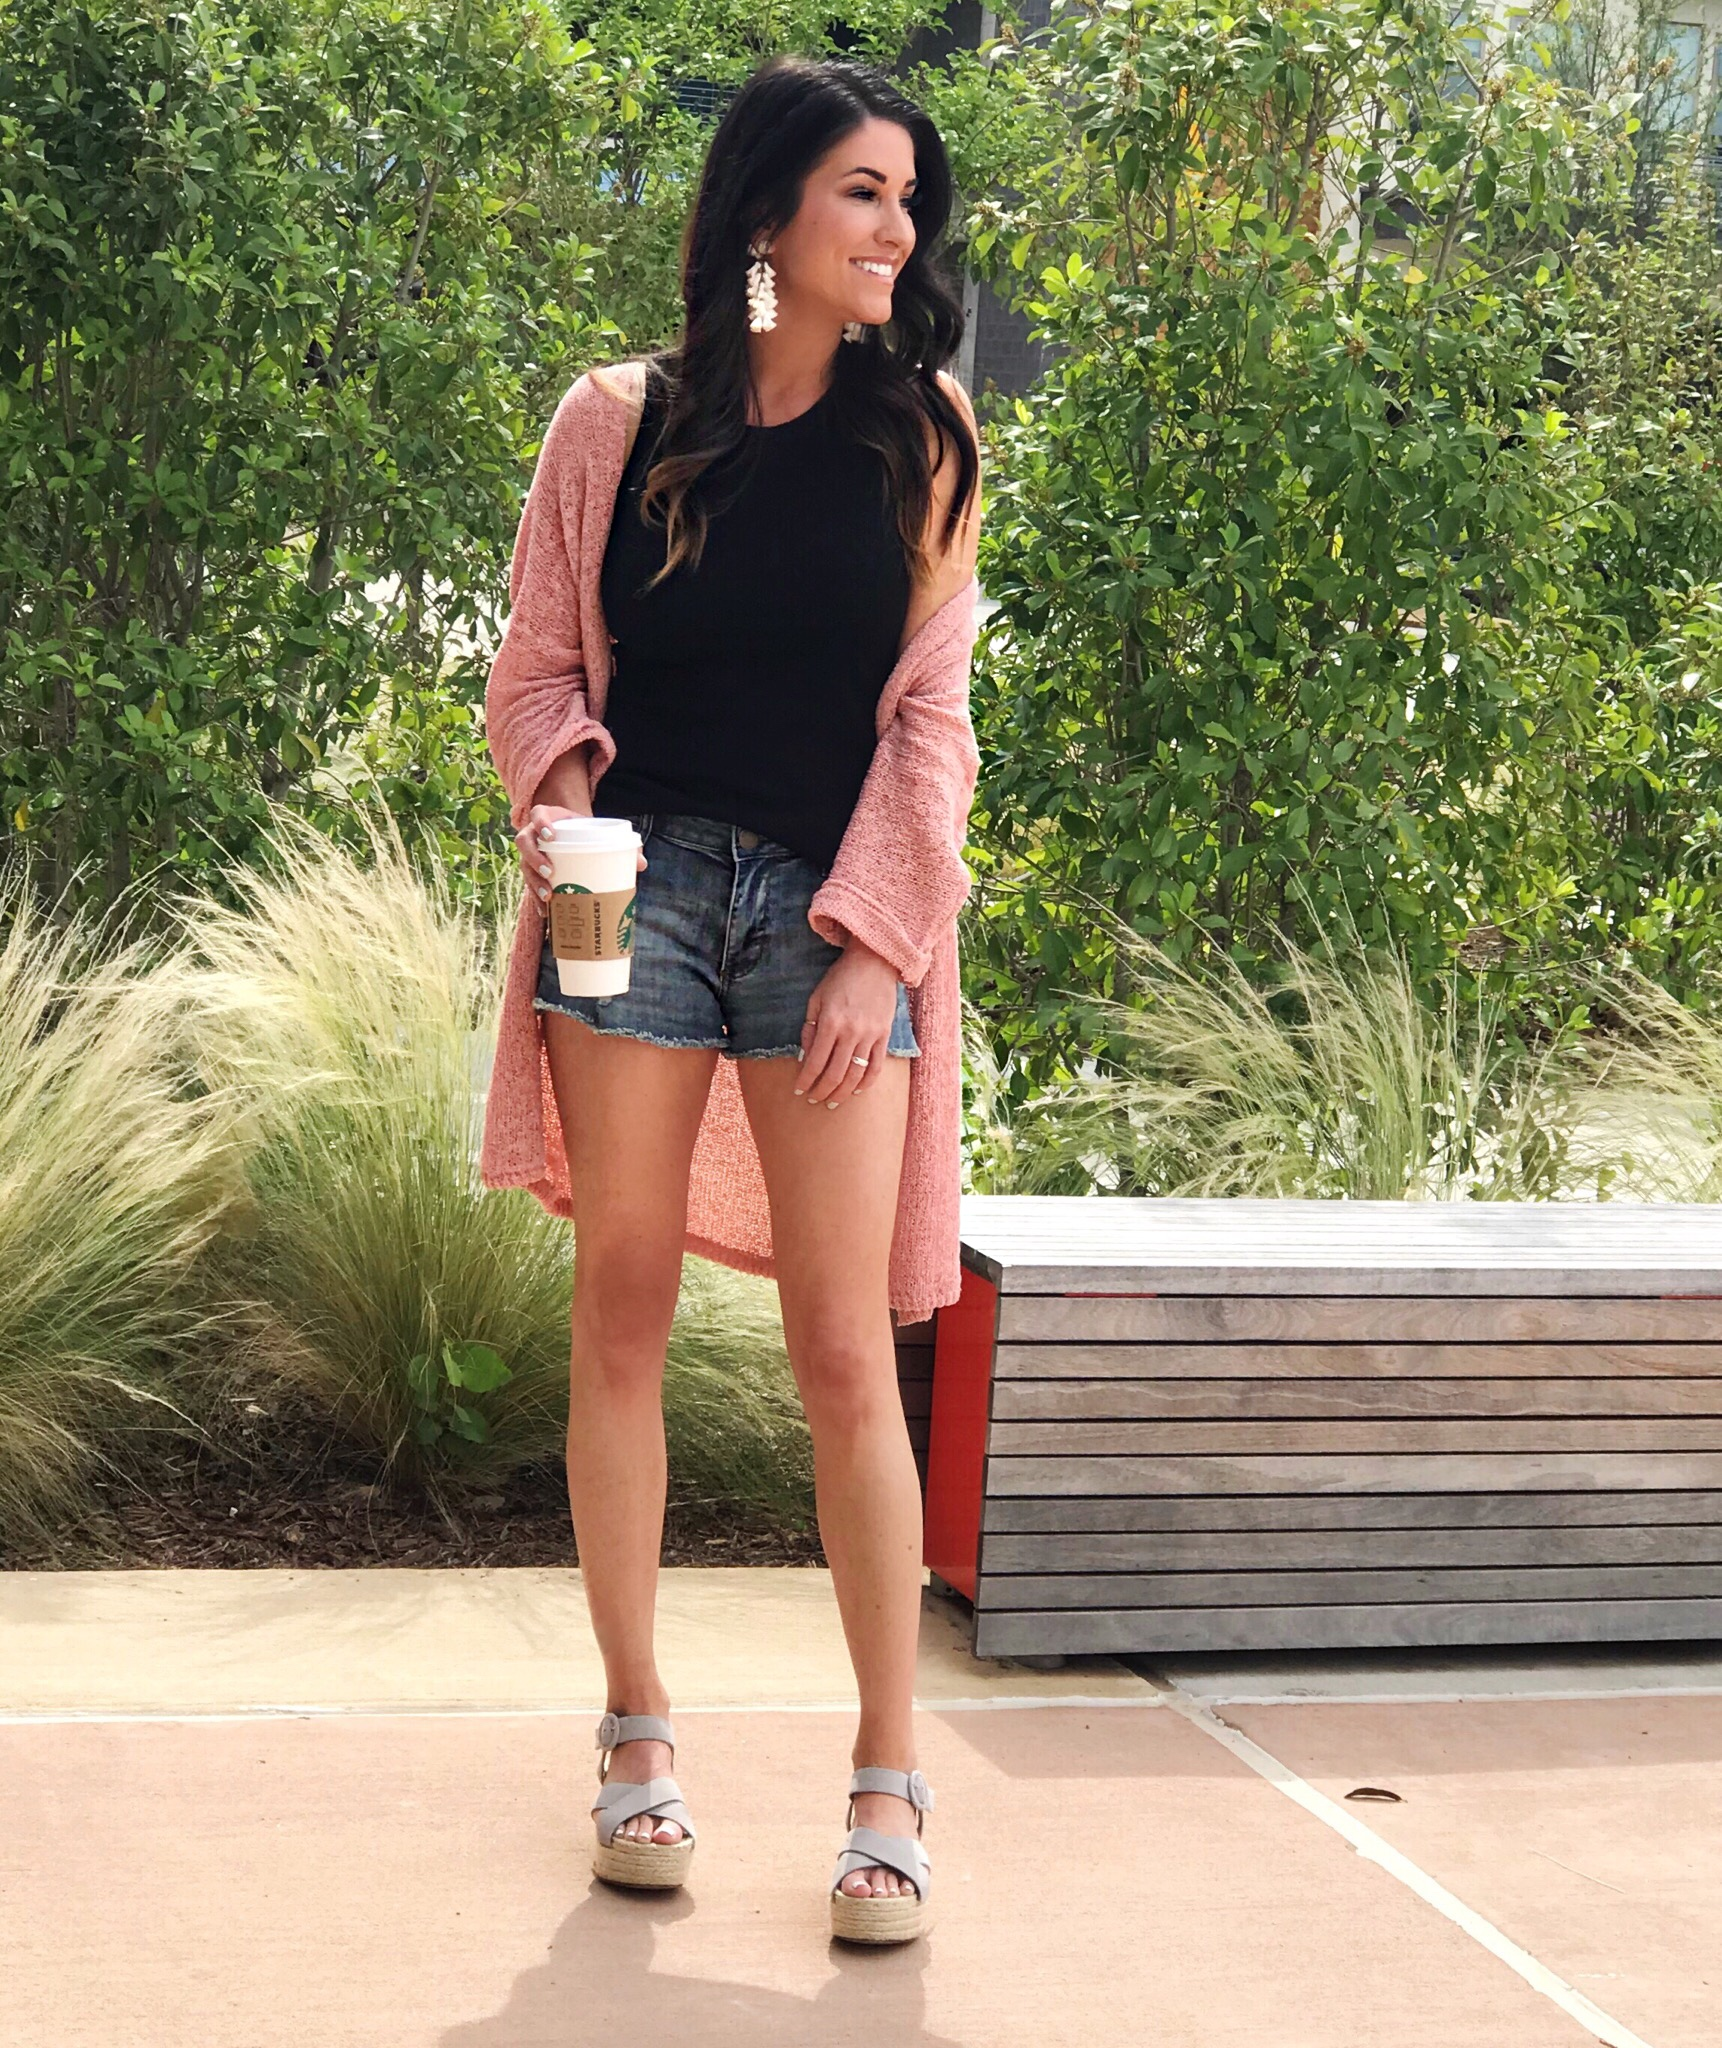 Cardigan and shorts, summer outfit